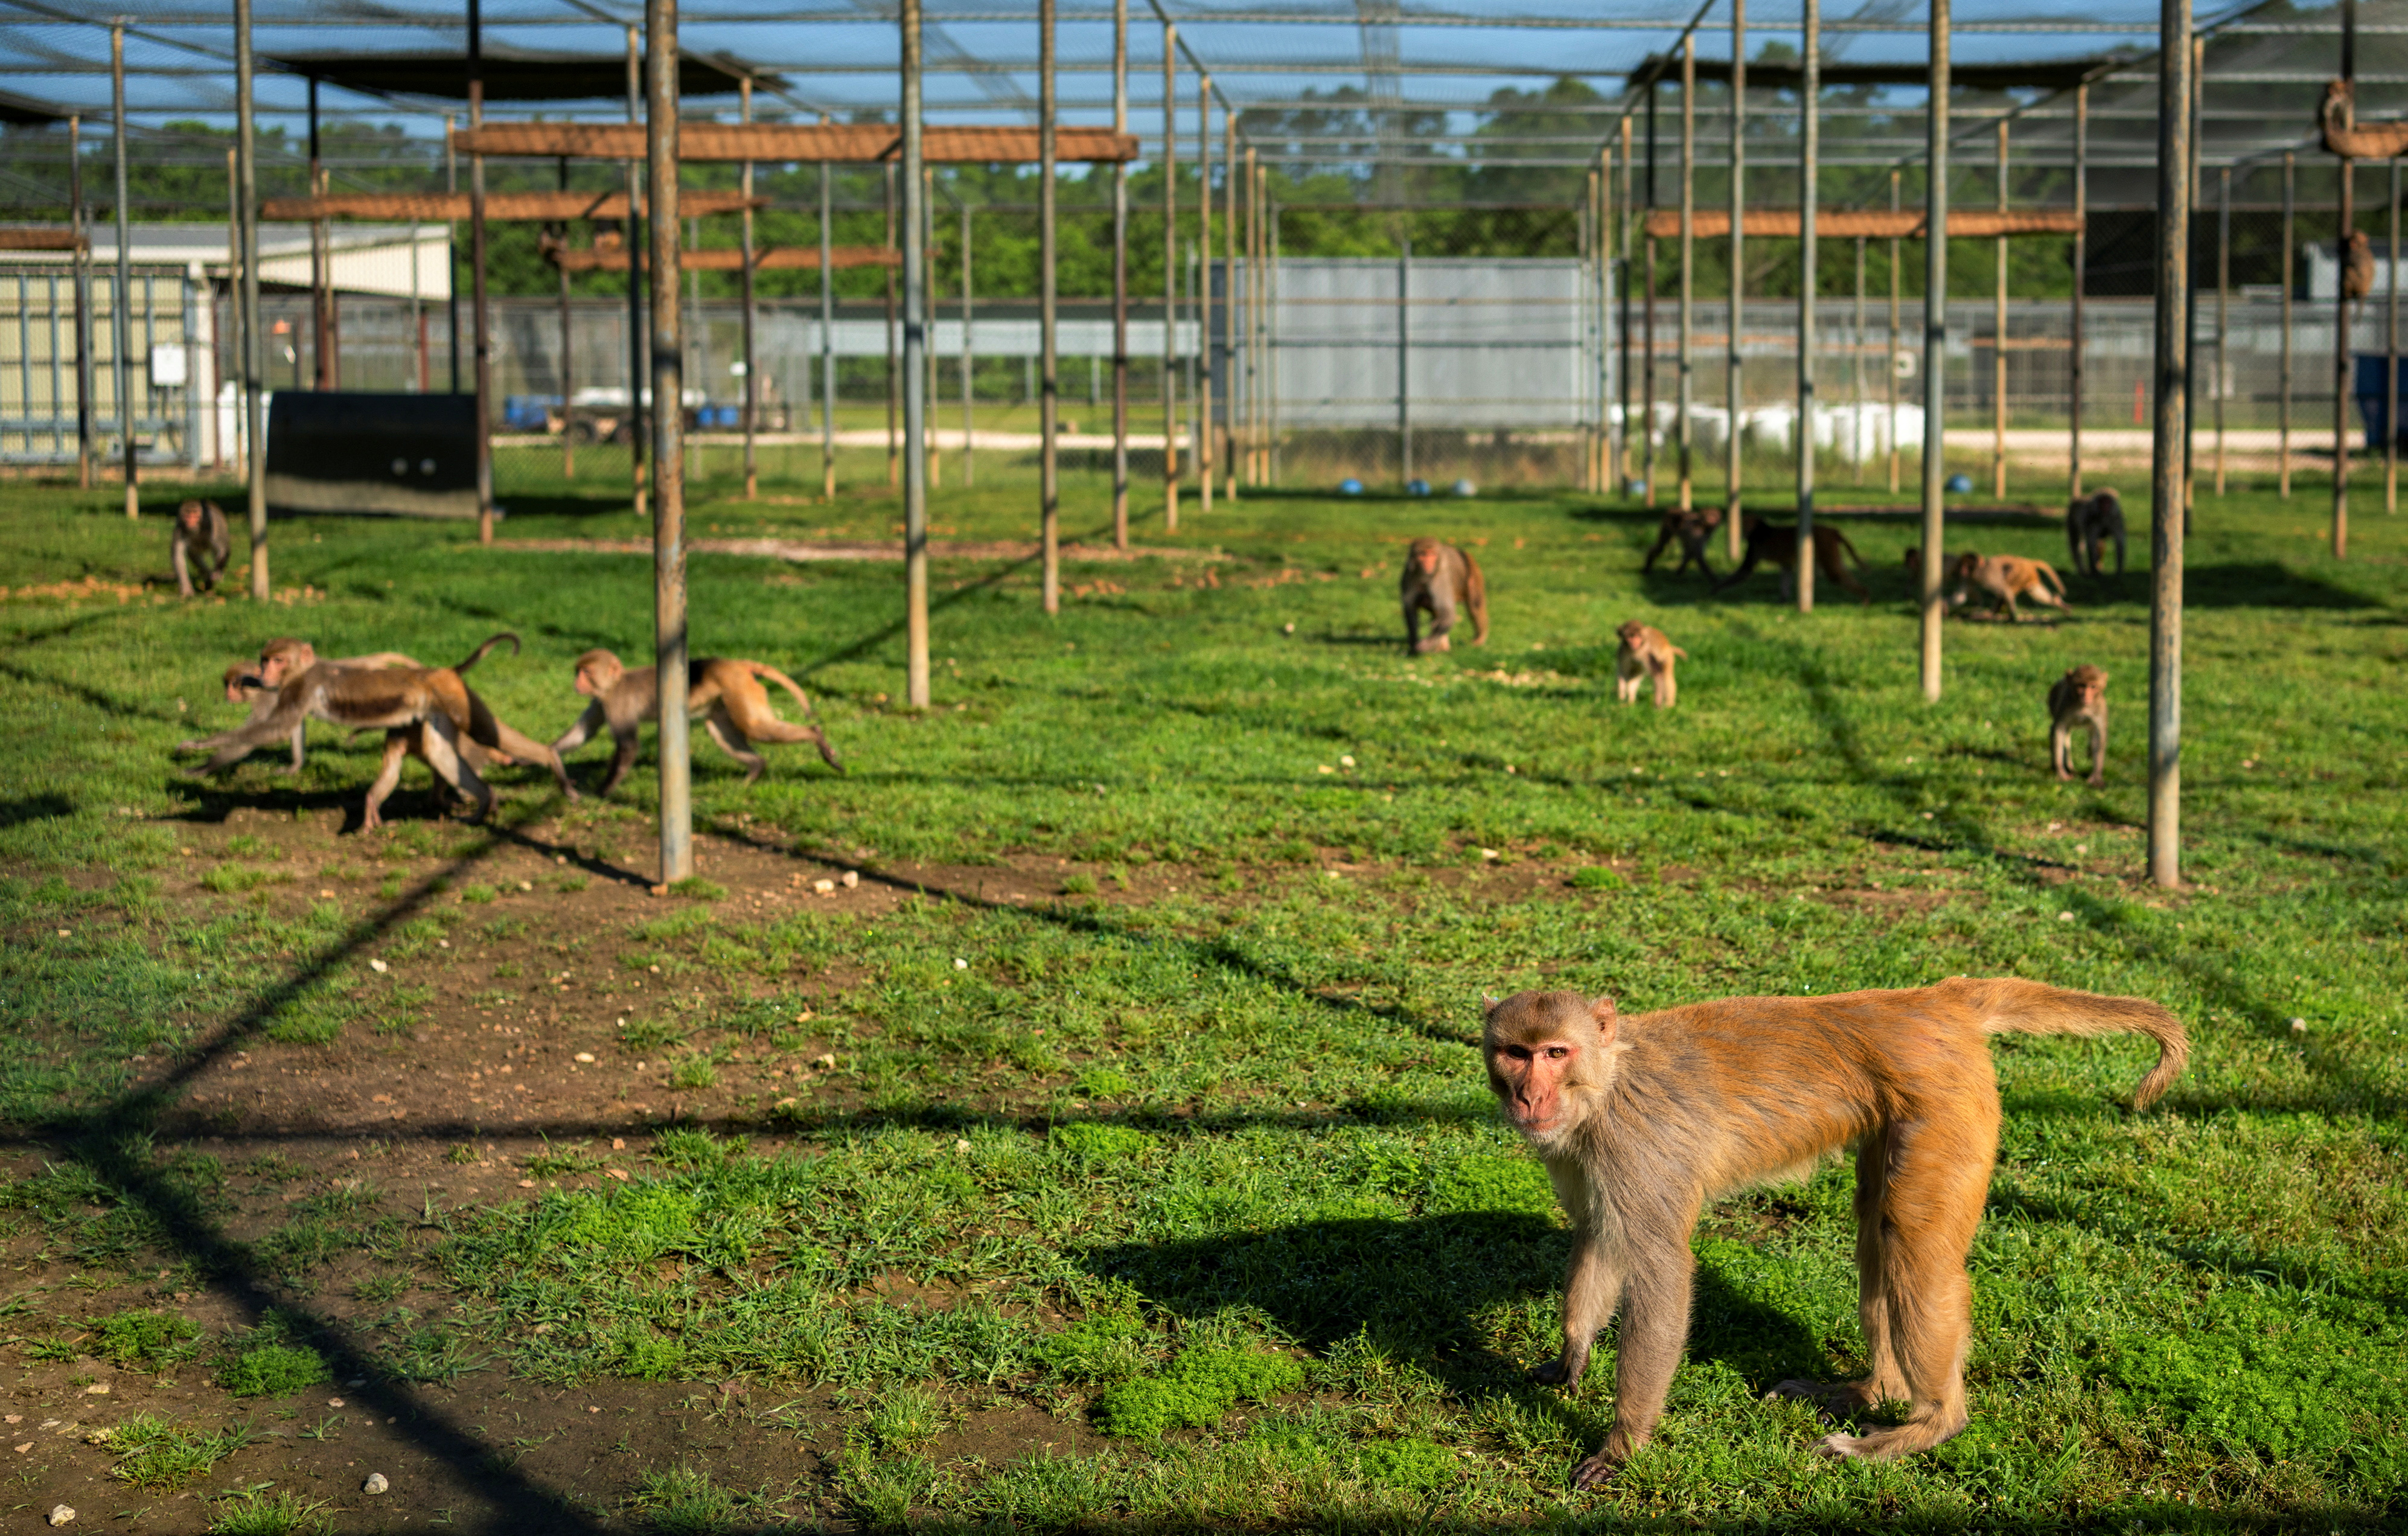 Rhesus macaque monkeys feed at the Tulane National Primate Research Center where the focus of study has shifted to the coronavirus disease (COVID-19) pandemic, in Covington, Louisiana, U.S., May 14, 2021. Picture taken May 14, 2021. REUTERS/Kathleen Flynn